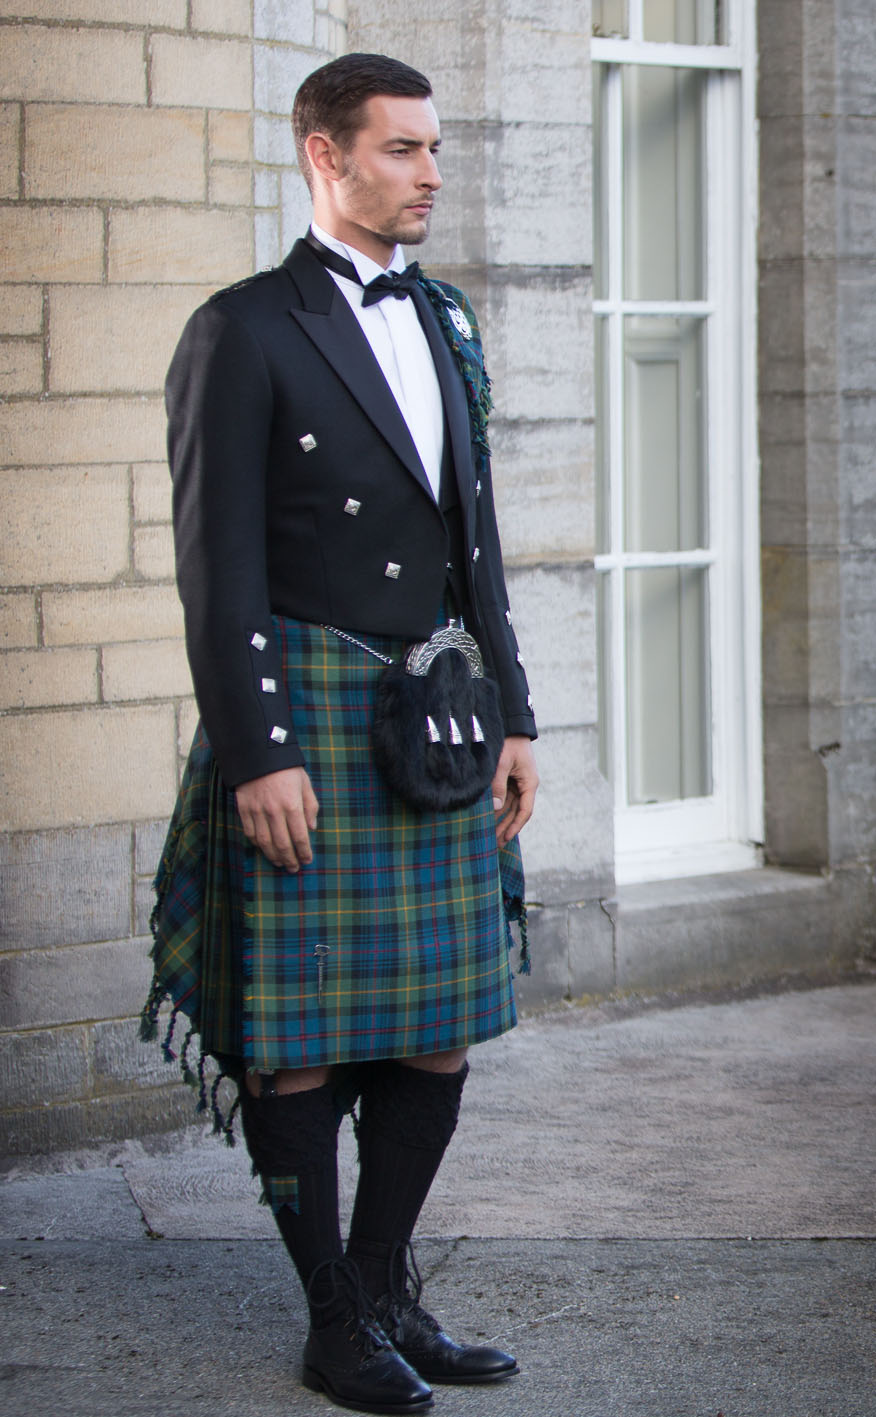 Classic Prince Charlie Kilt Outfit, with Luxury accessories